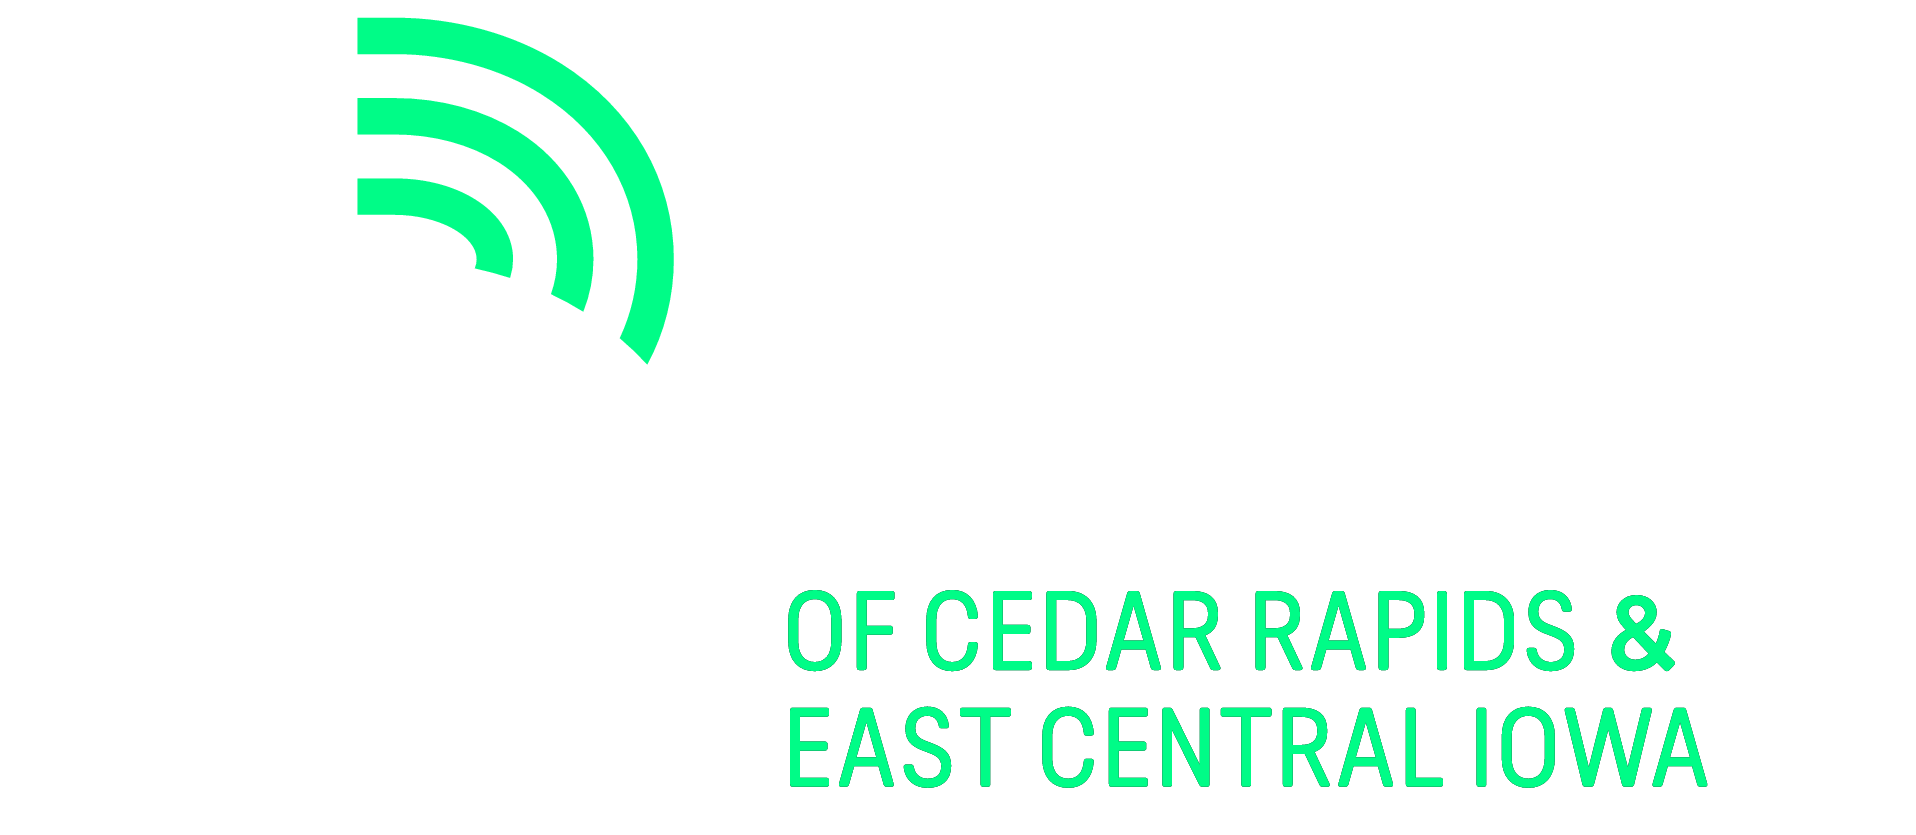 Big Brothers Big Sisters of Cedar Rapids